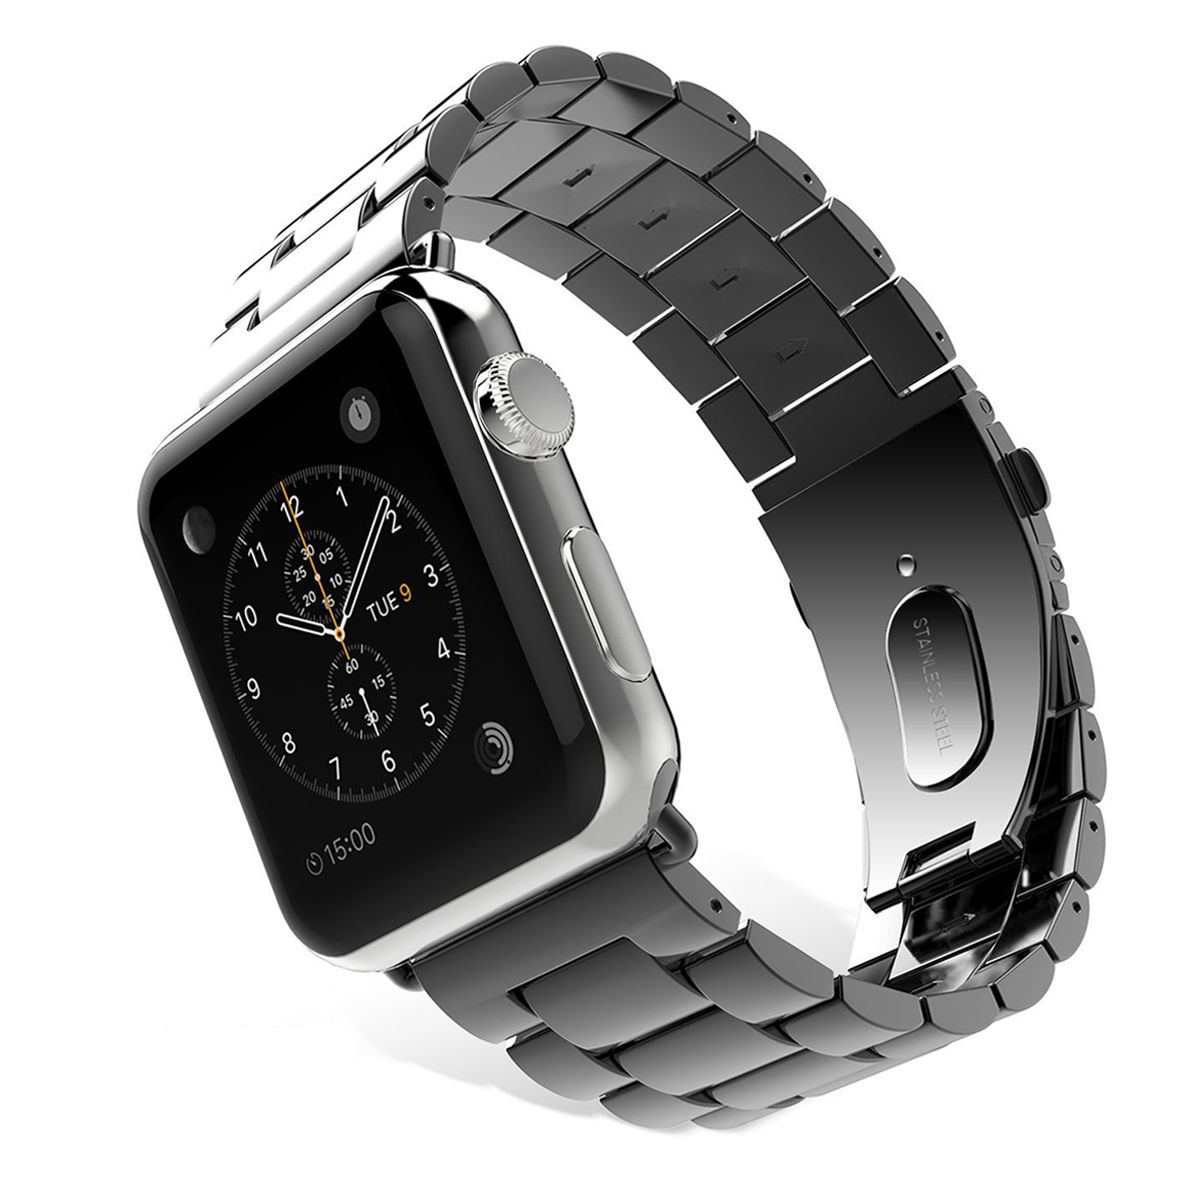 Apple Watch Replacement Band, Mignova Solid Stainless Steel Link Bracelet Replacement Band Strap with Durable Folding Clasp for Apple Watch Series 3 / 2 / 1 (38mm-Black)